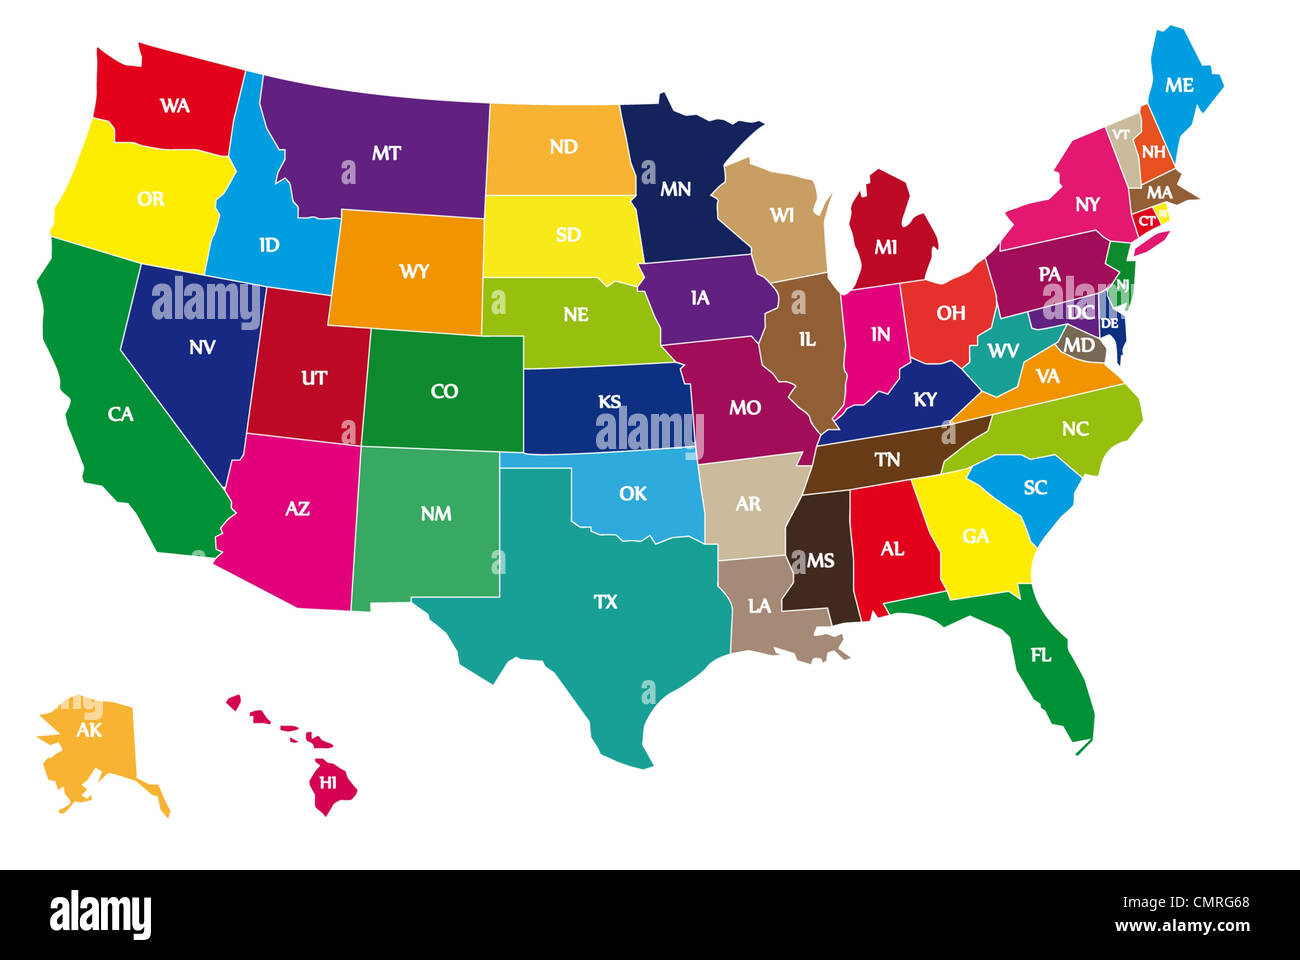 Multicolor Bordering Geographical Map of USA with Bordering ...